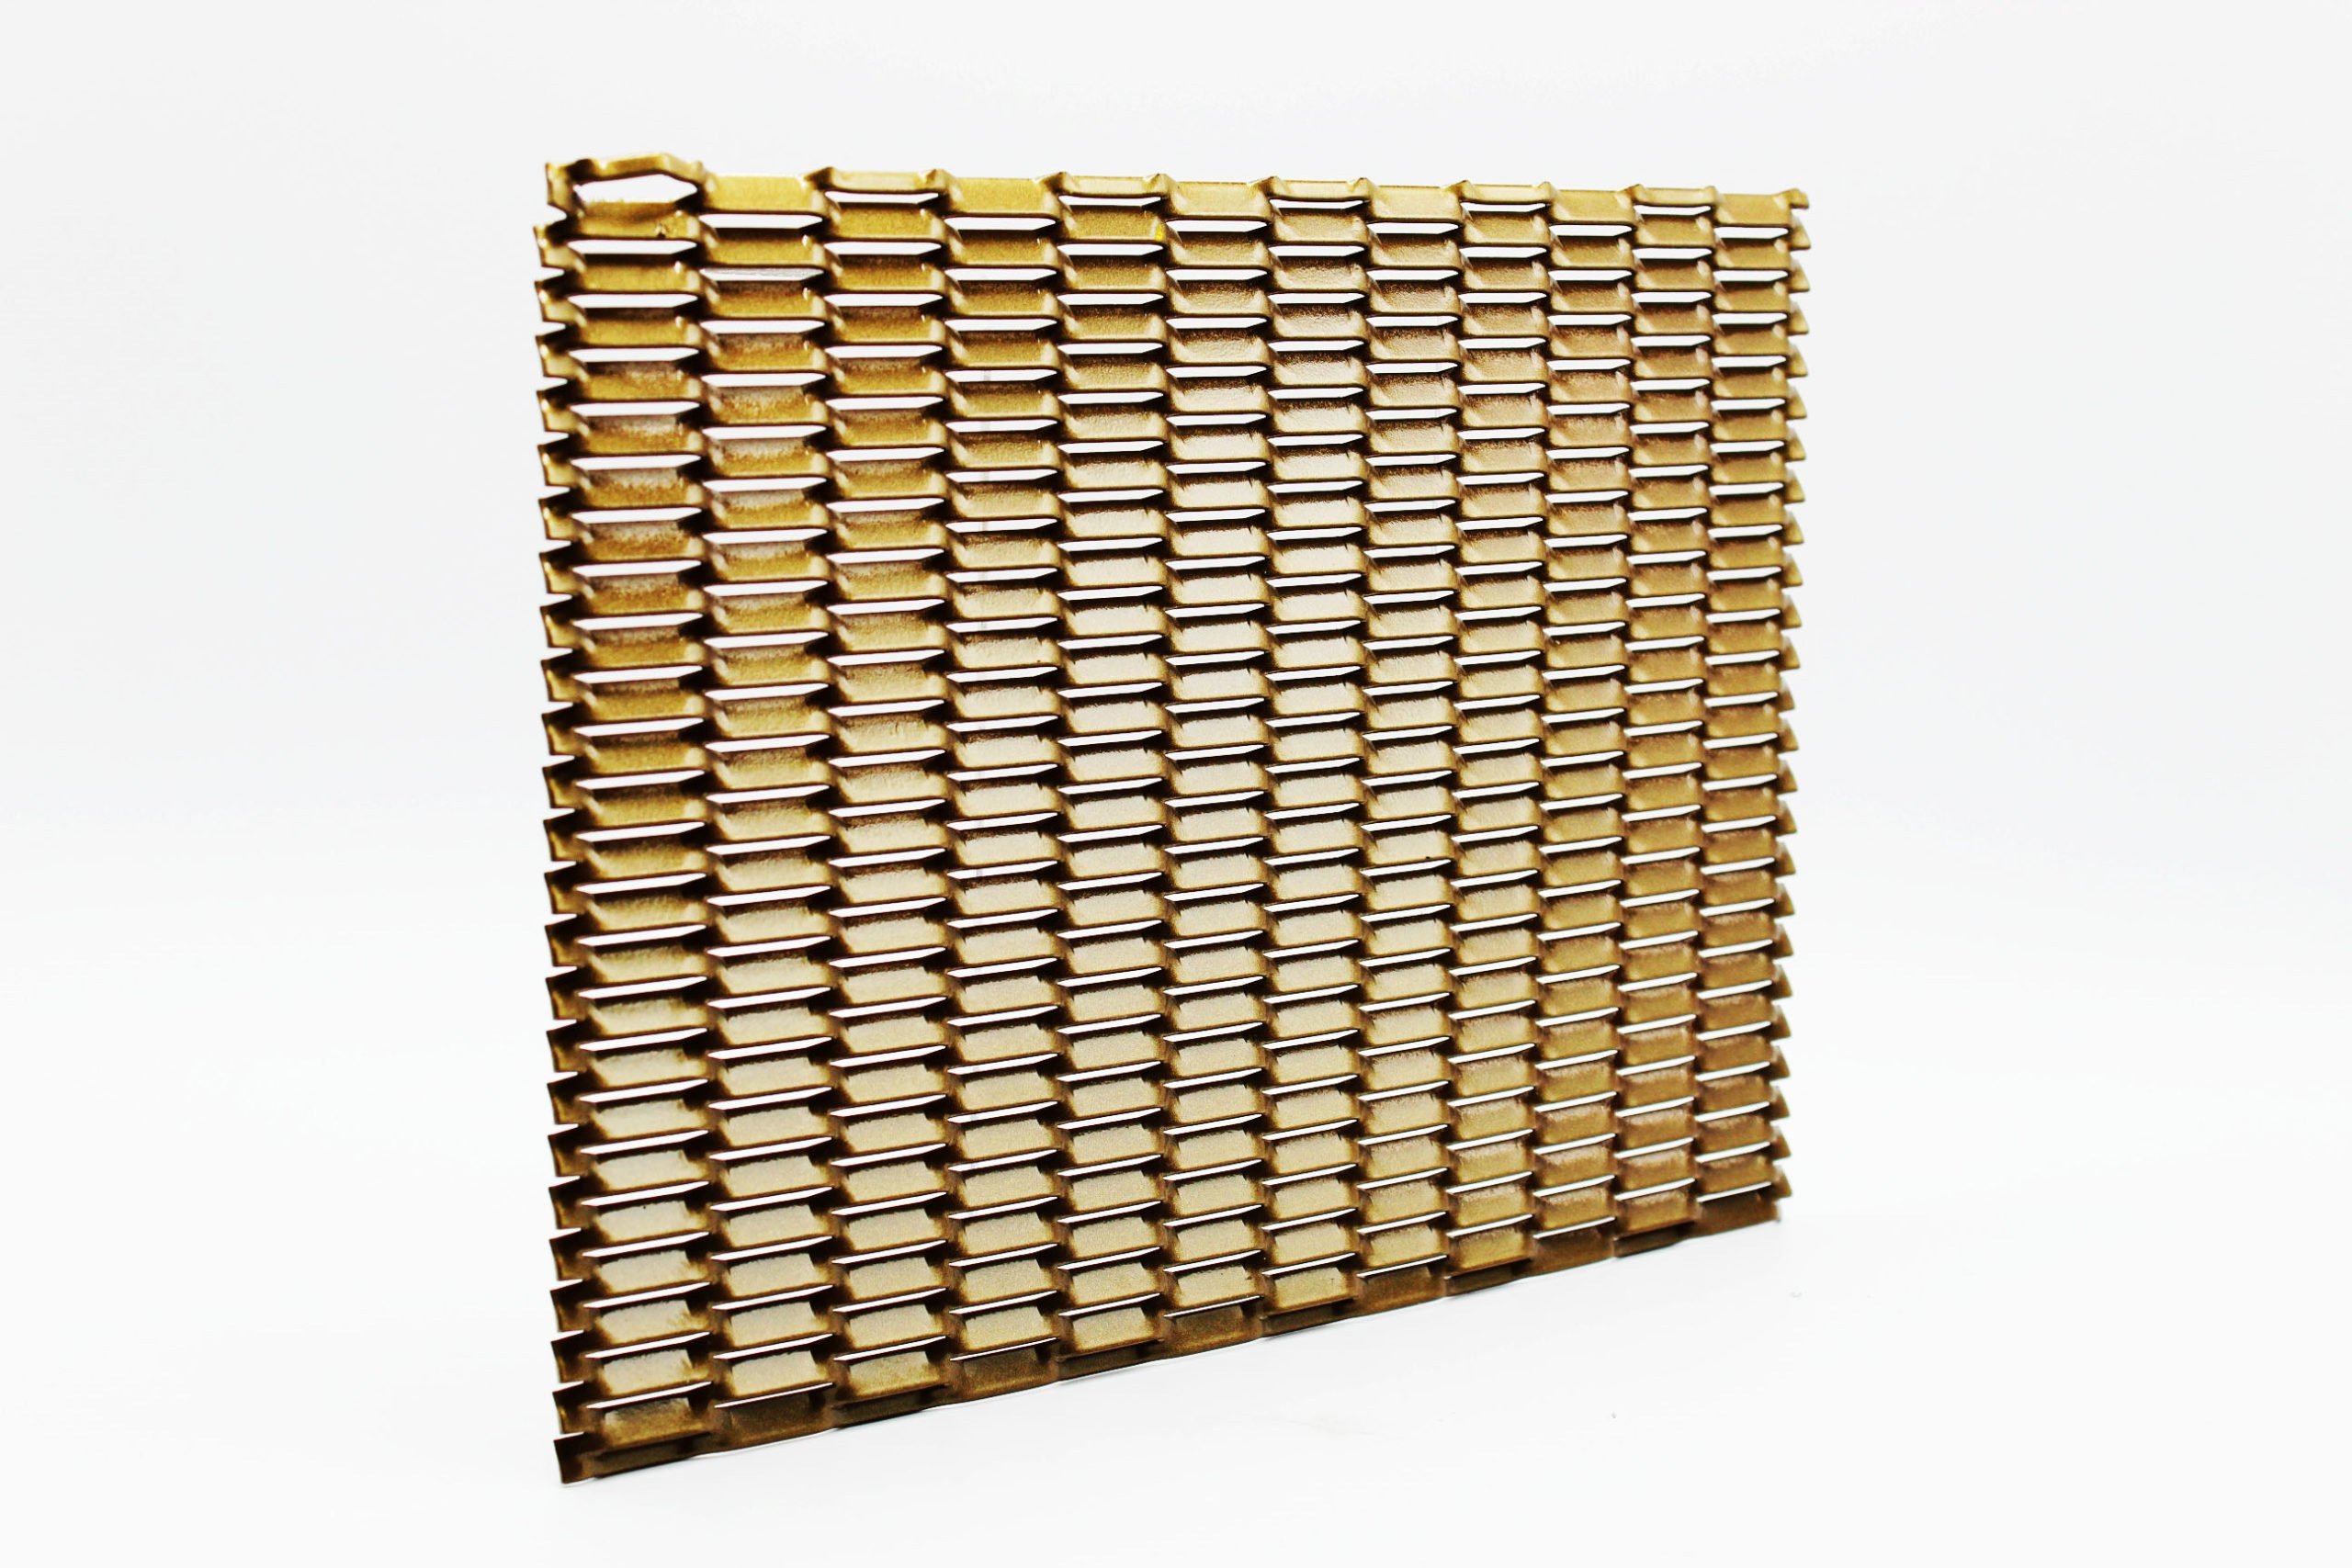 ribera gold expanded architectural mesh